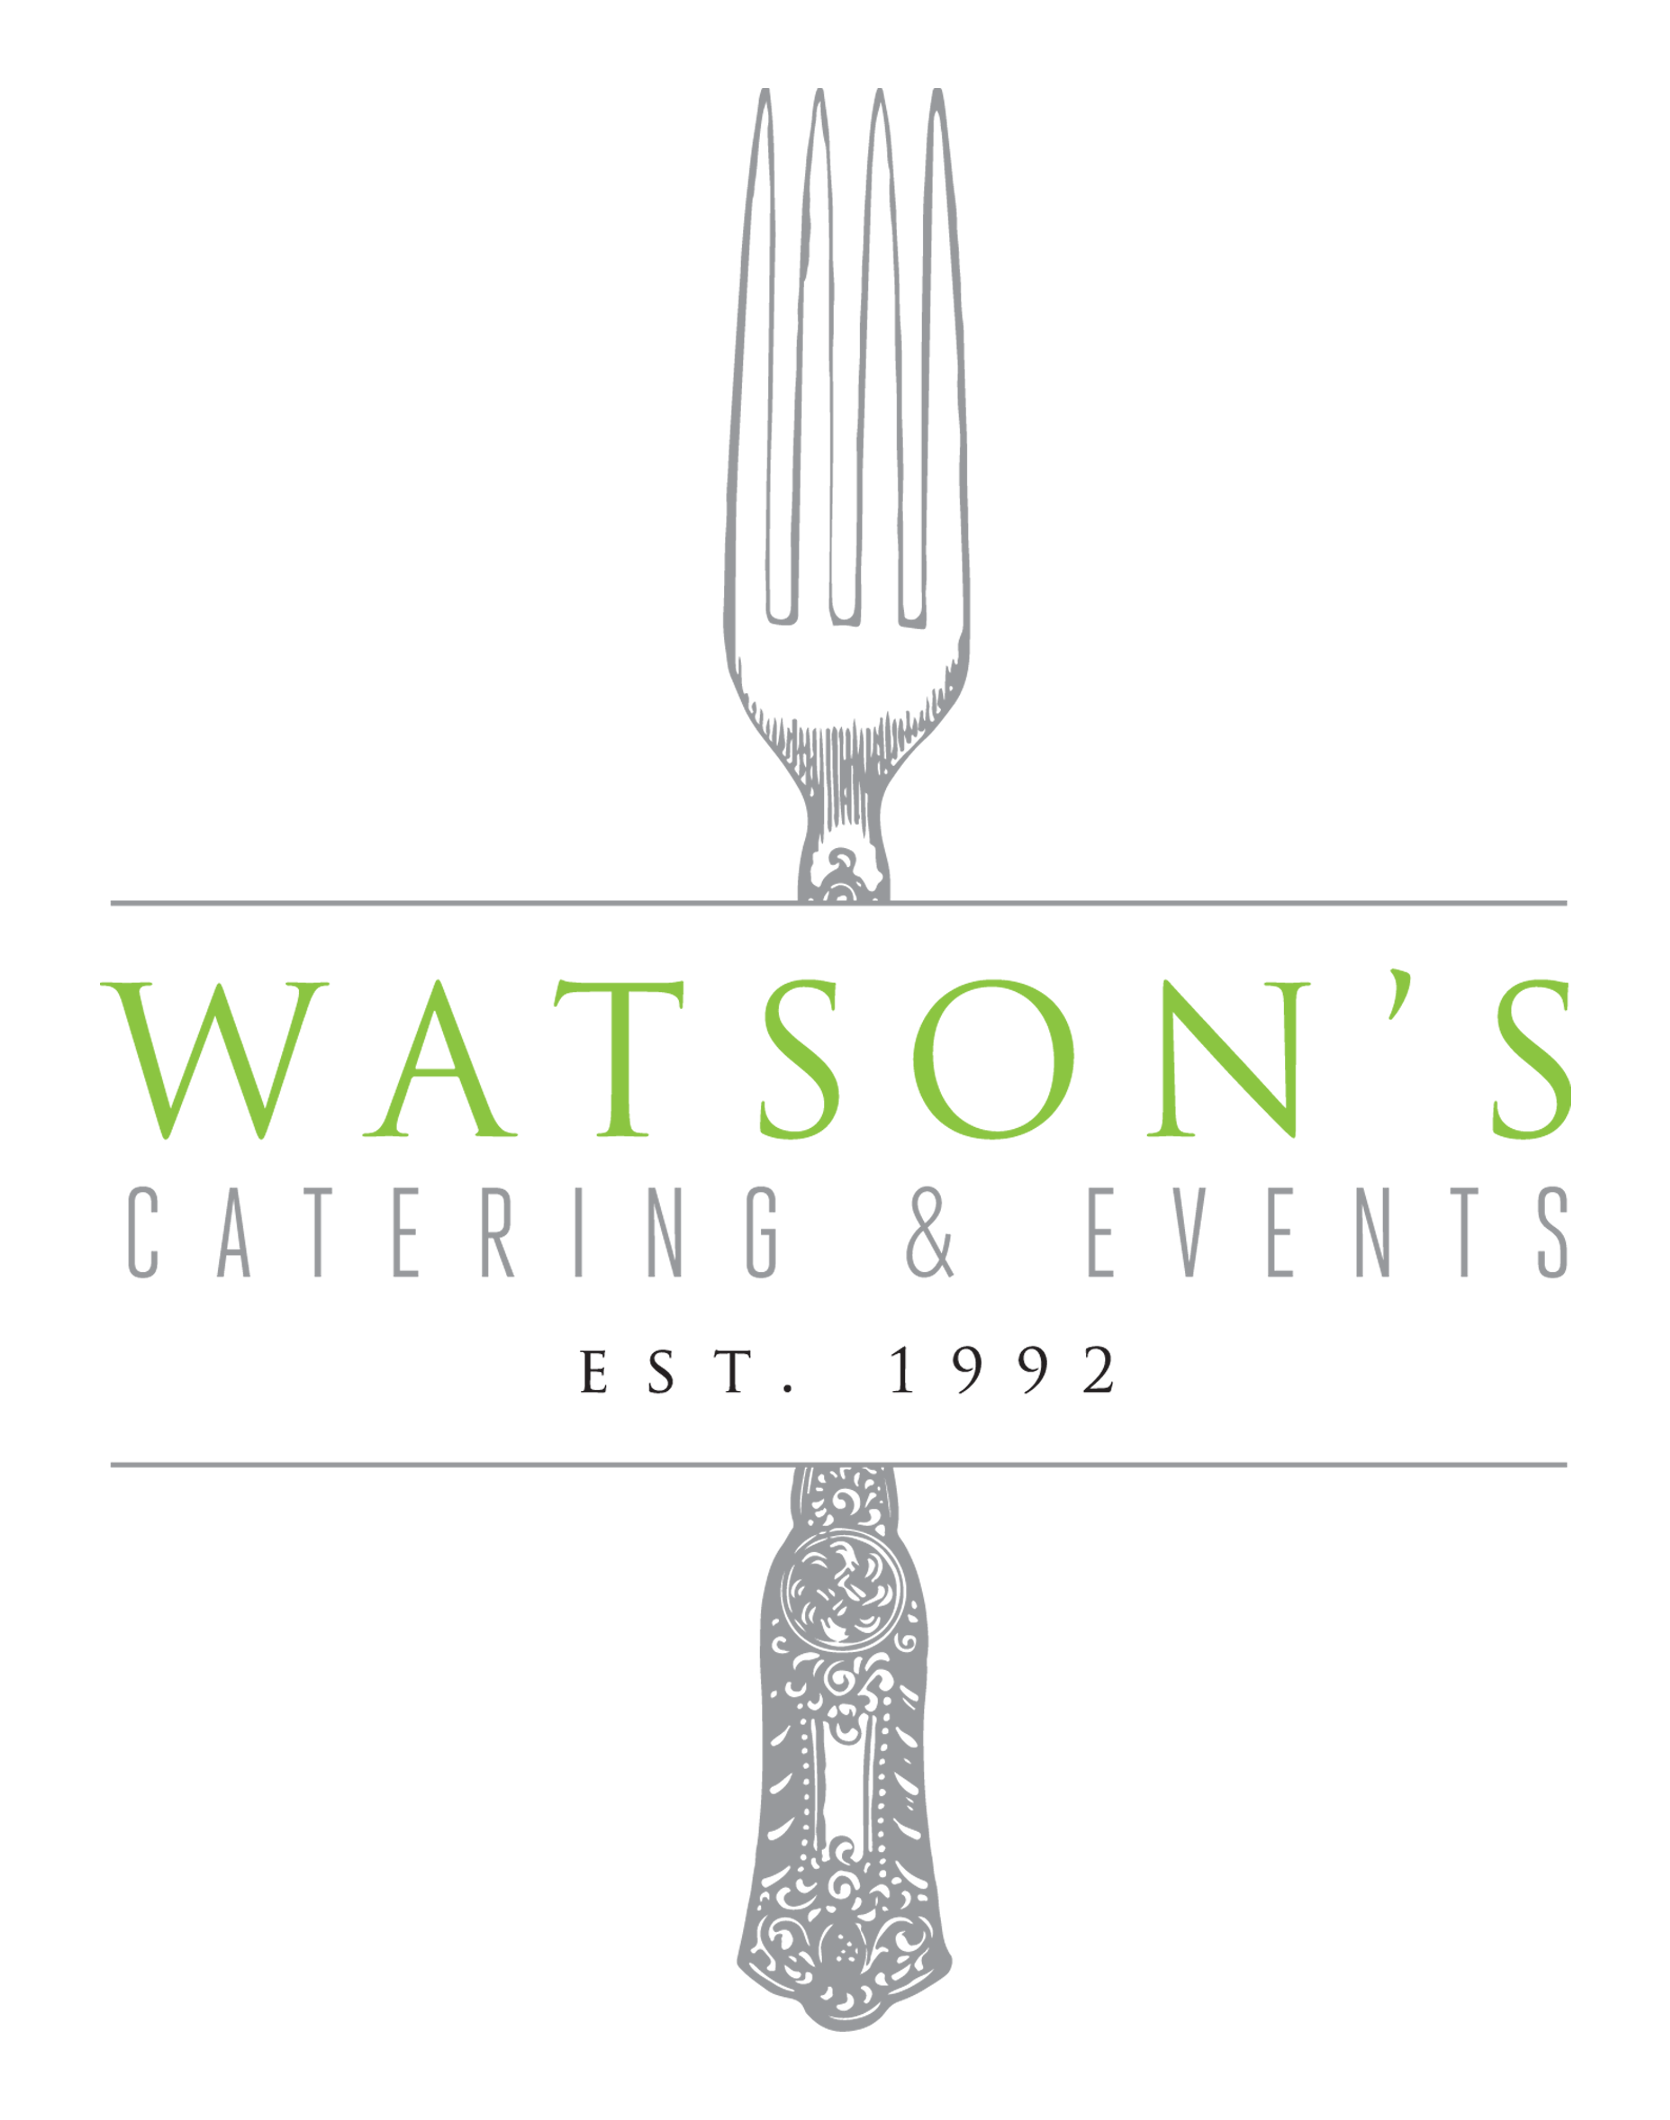 Watsons Catering